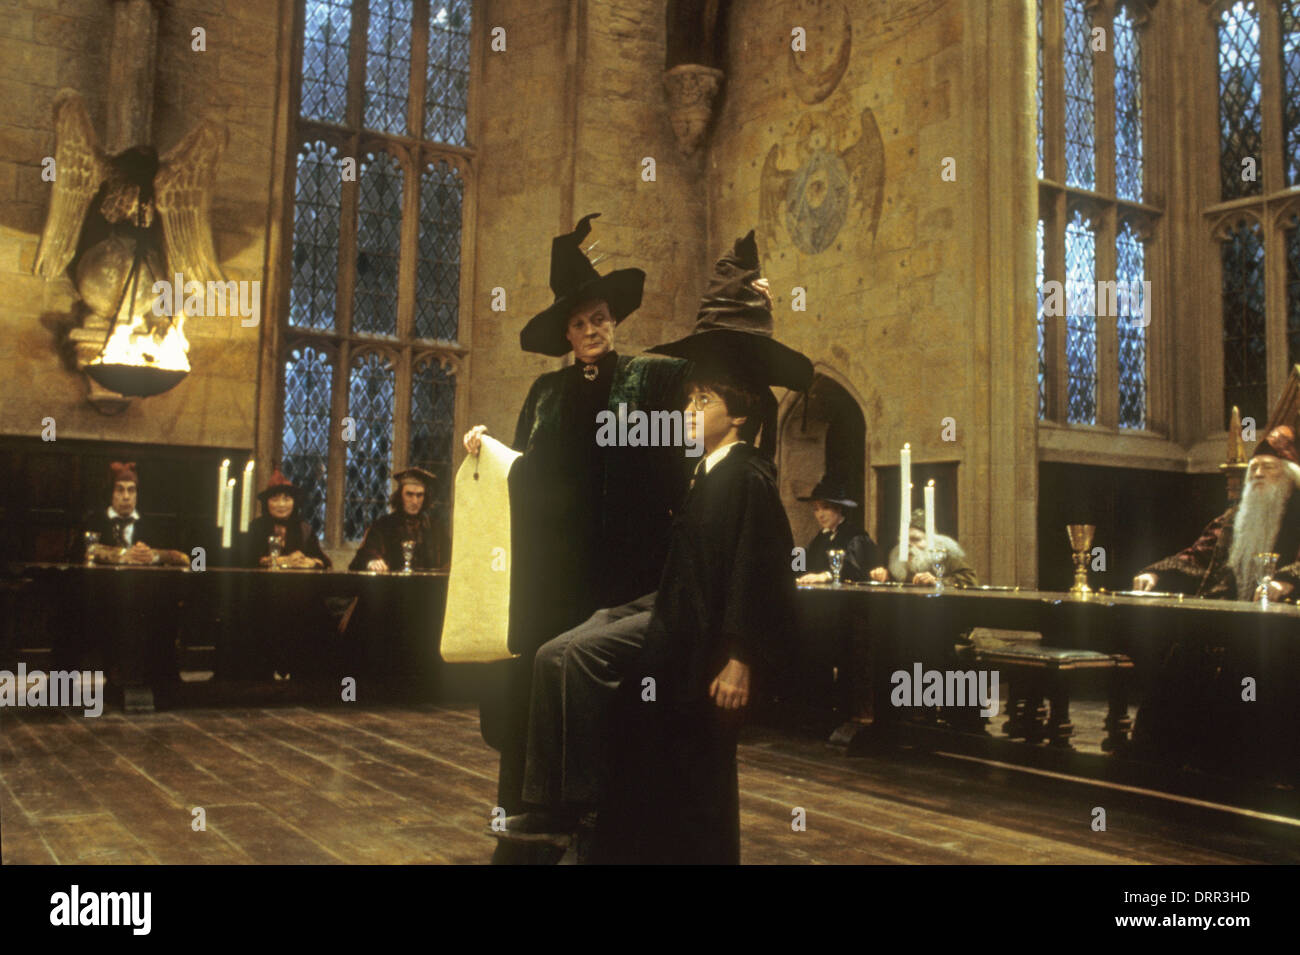 HARRY POTTER AND THE SORCERER'S STONE 2001 Warner Bros film with Maggie Smith and Daniel Radcliffe - Stock Image